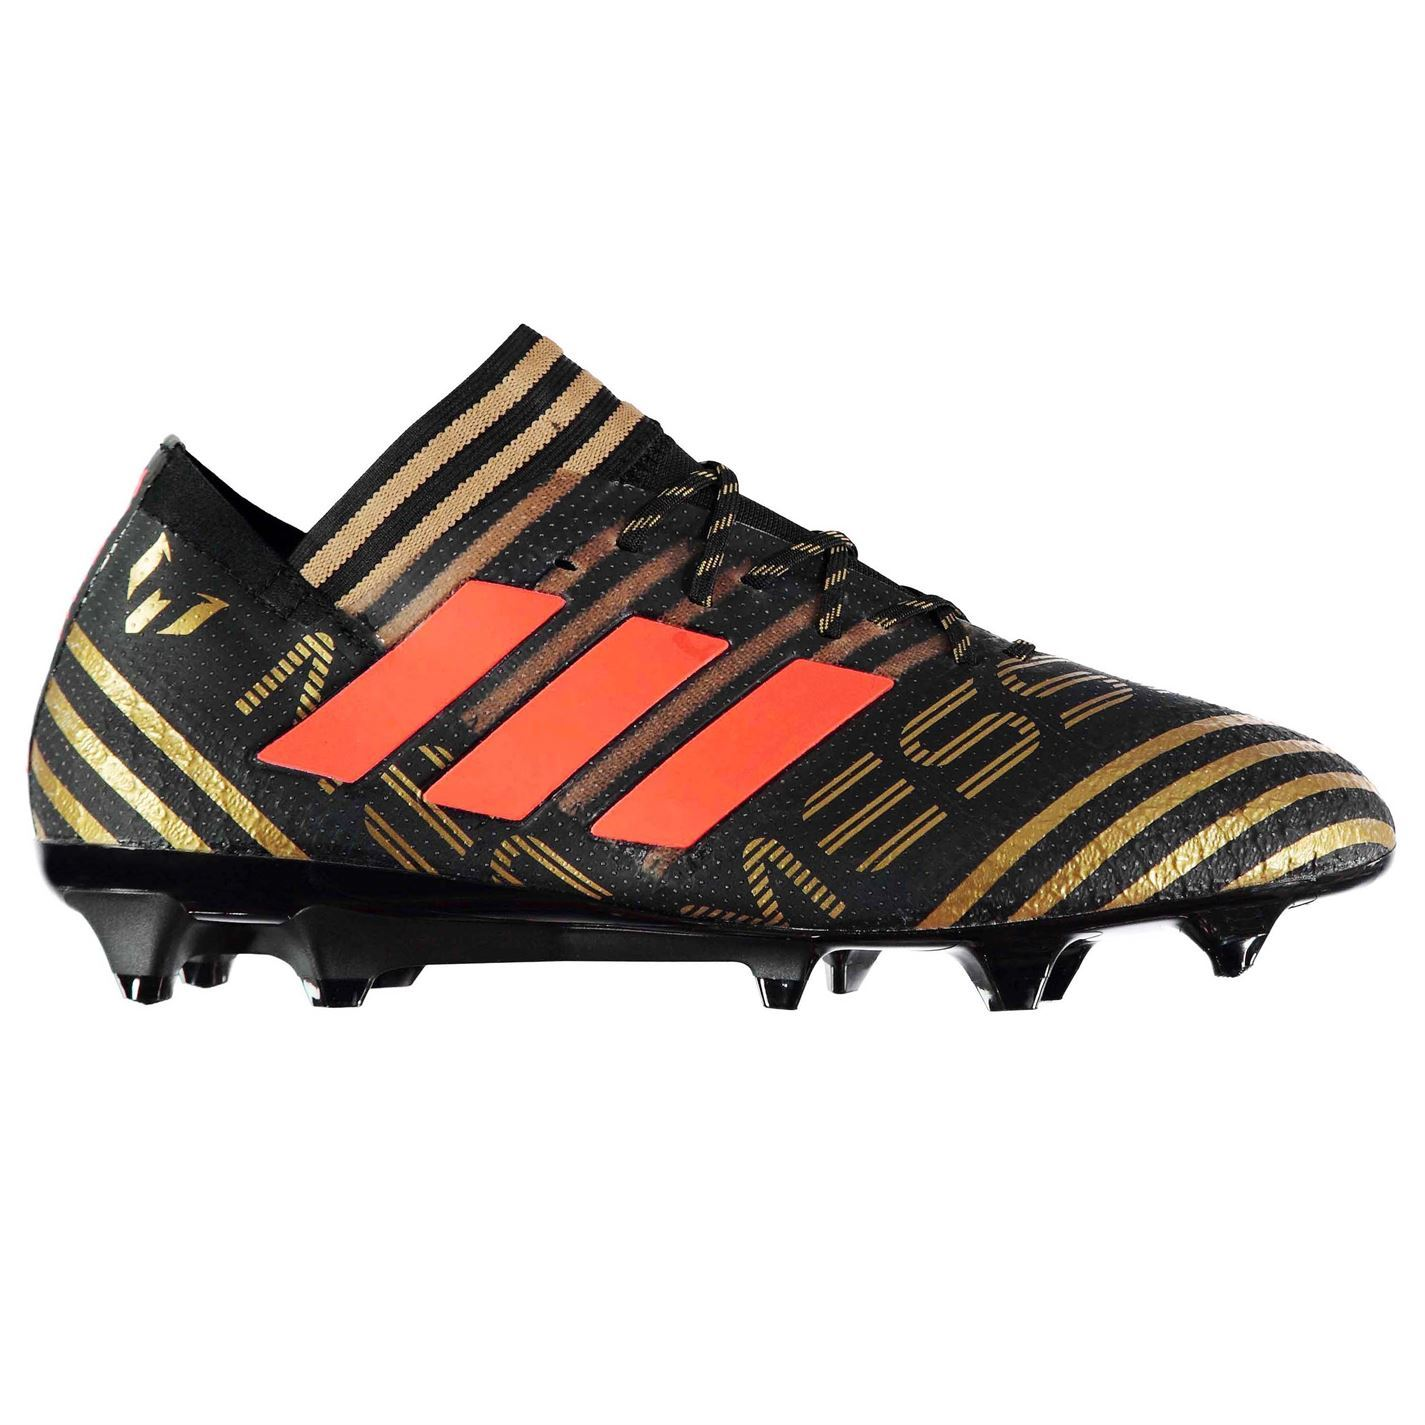 0e484e85 ... adidas Nemeziz Messi 17.1 Firm Ground Football Boots Mens Black Soccer  Cleats ...